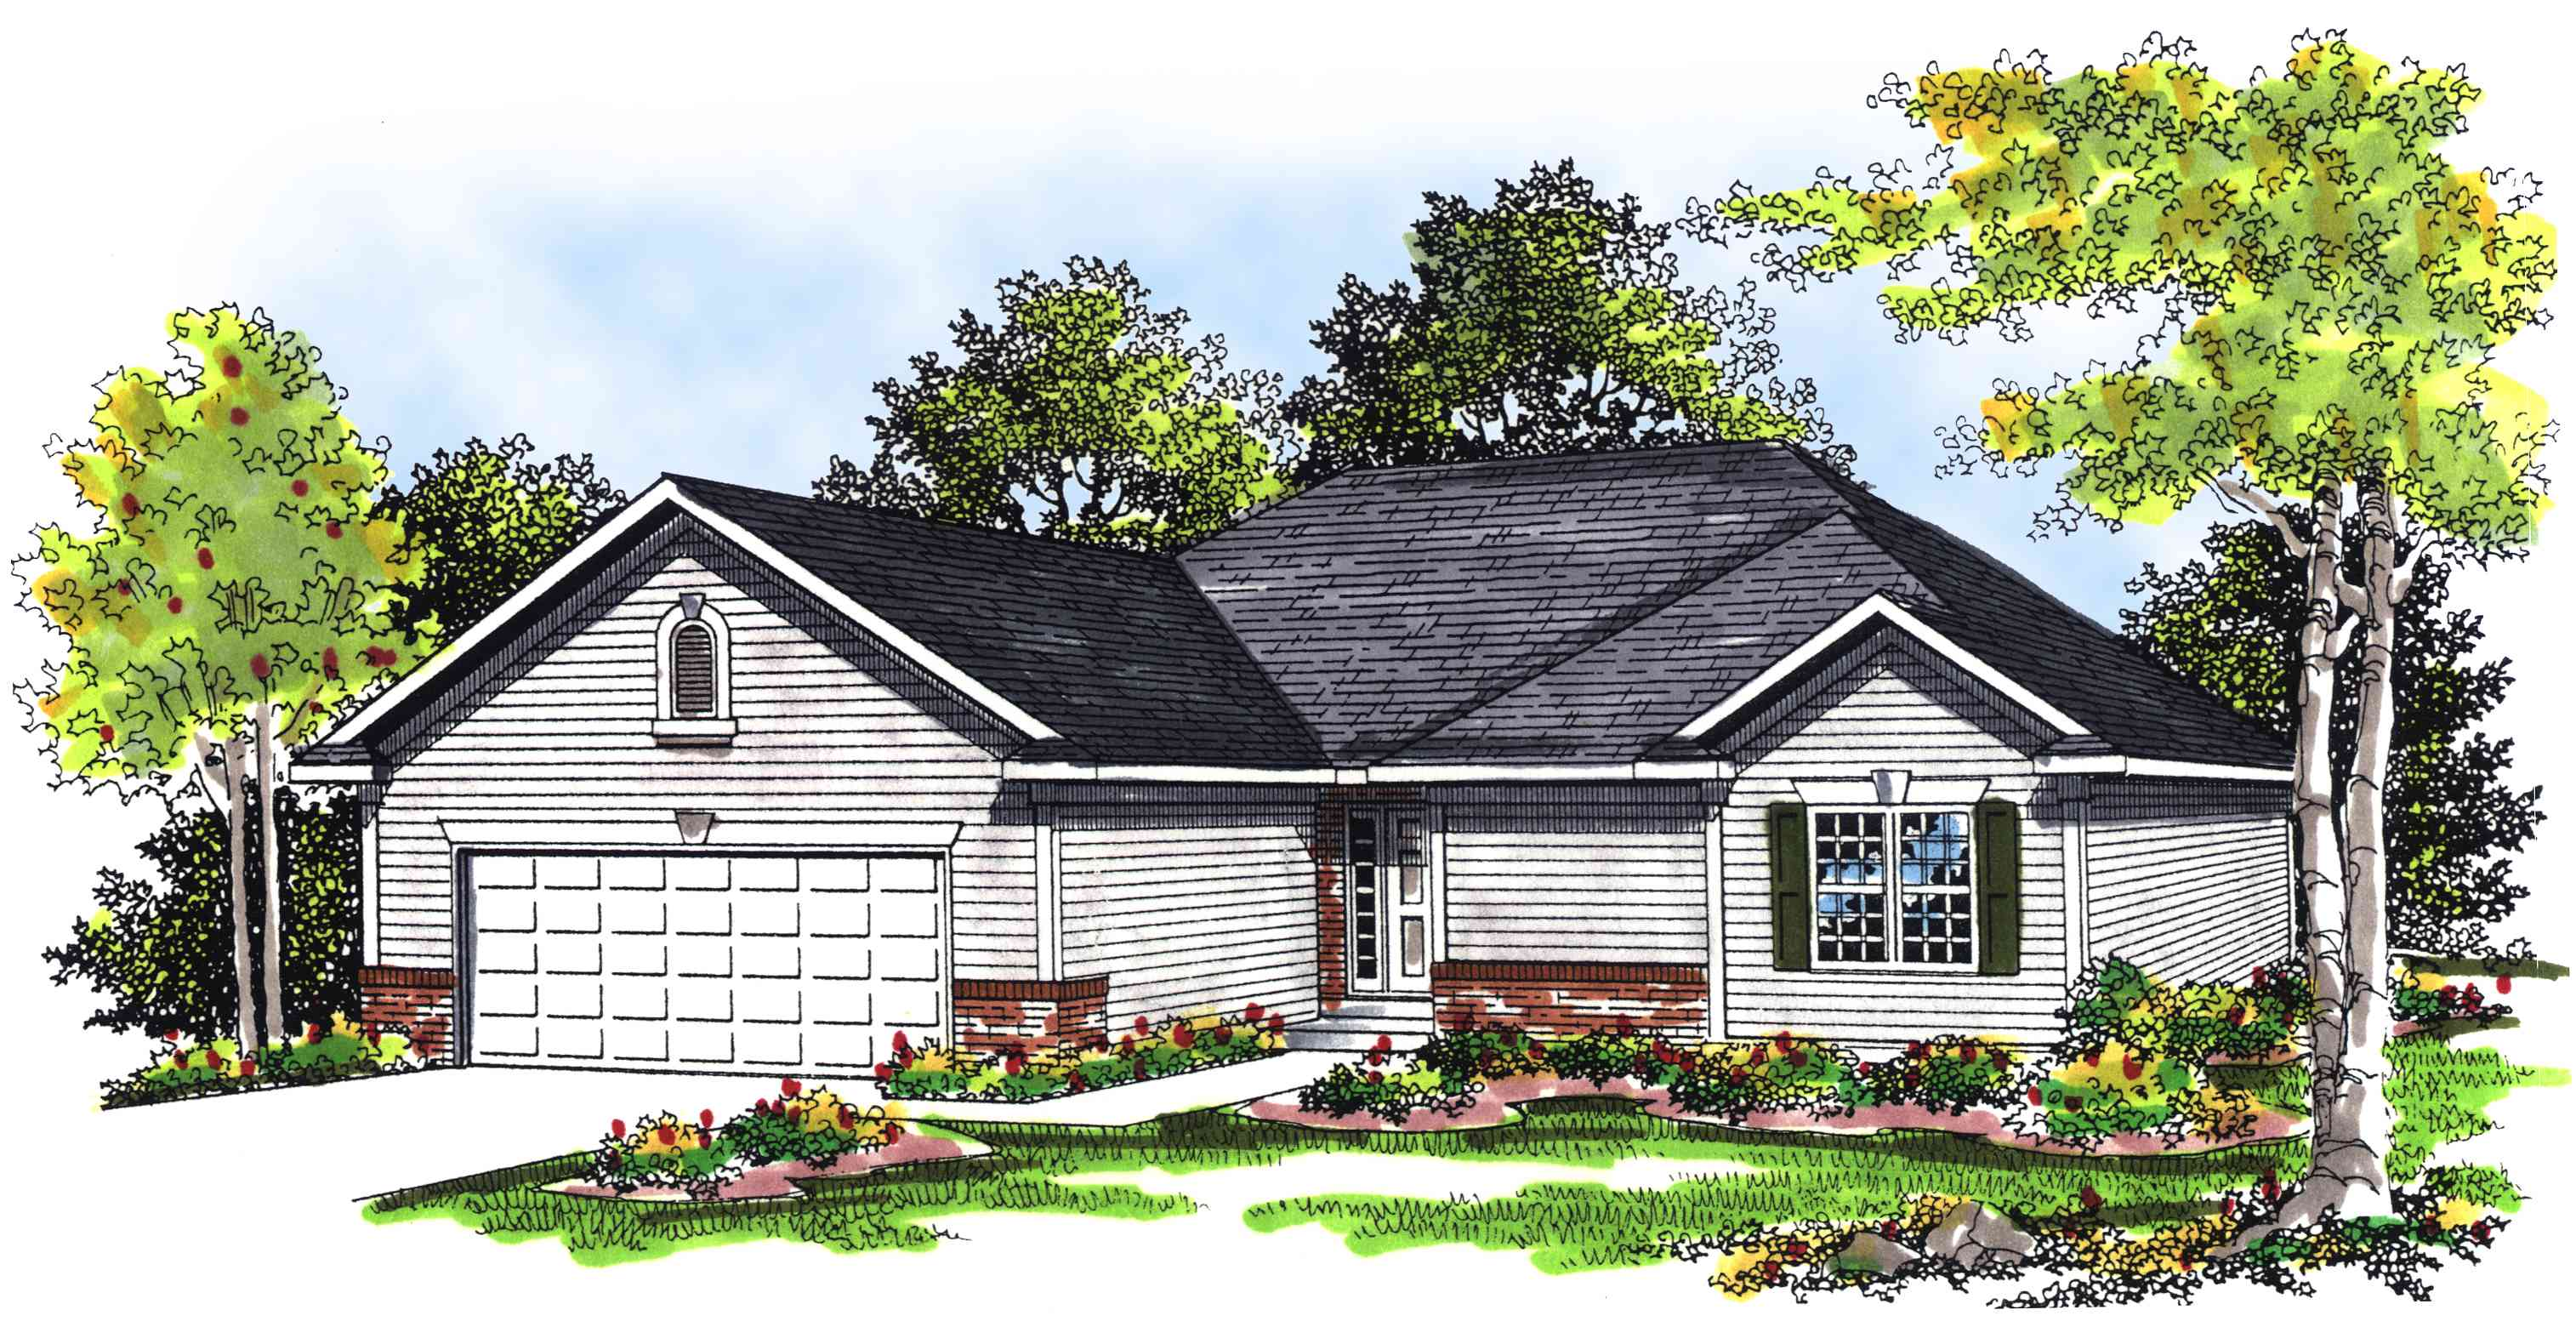 Classic ranch home plan 89528ah 1st floor master suite for Classic ranch home plans